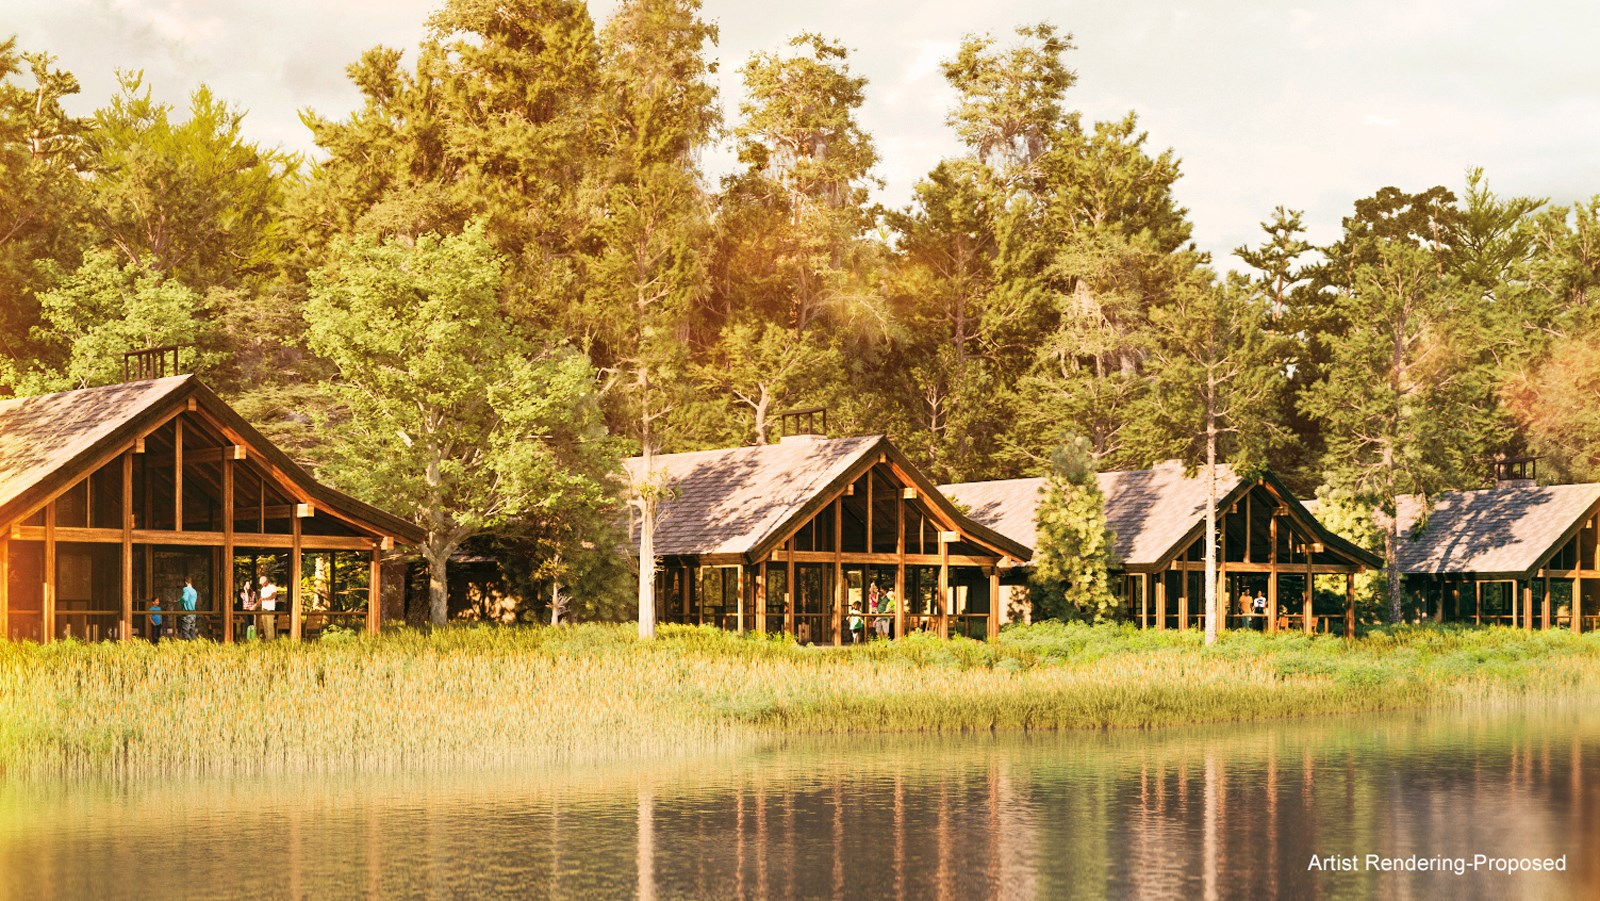 2 Bedroom Log Cabin Photos Rooms And Floor Plans At Copper Creek Villas And